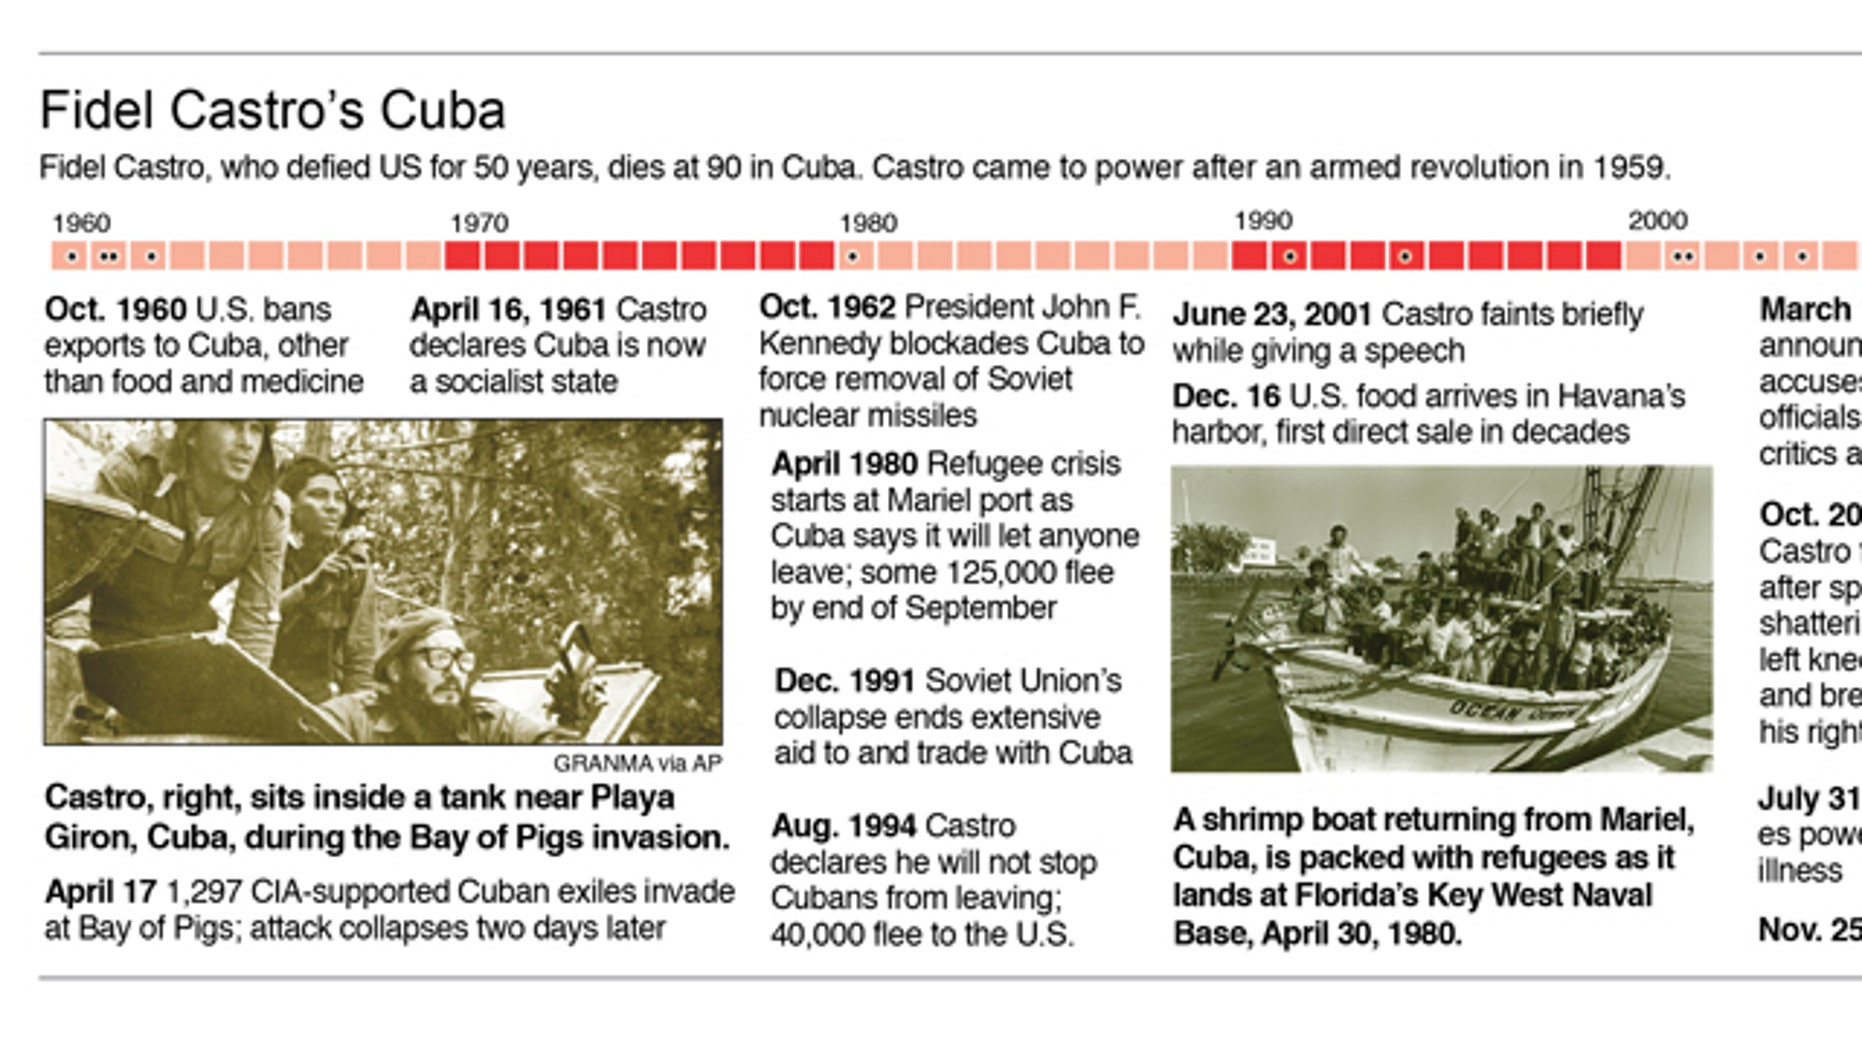 Fidel Castro's Cuba defied US for 50 years.